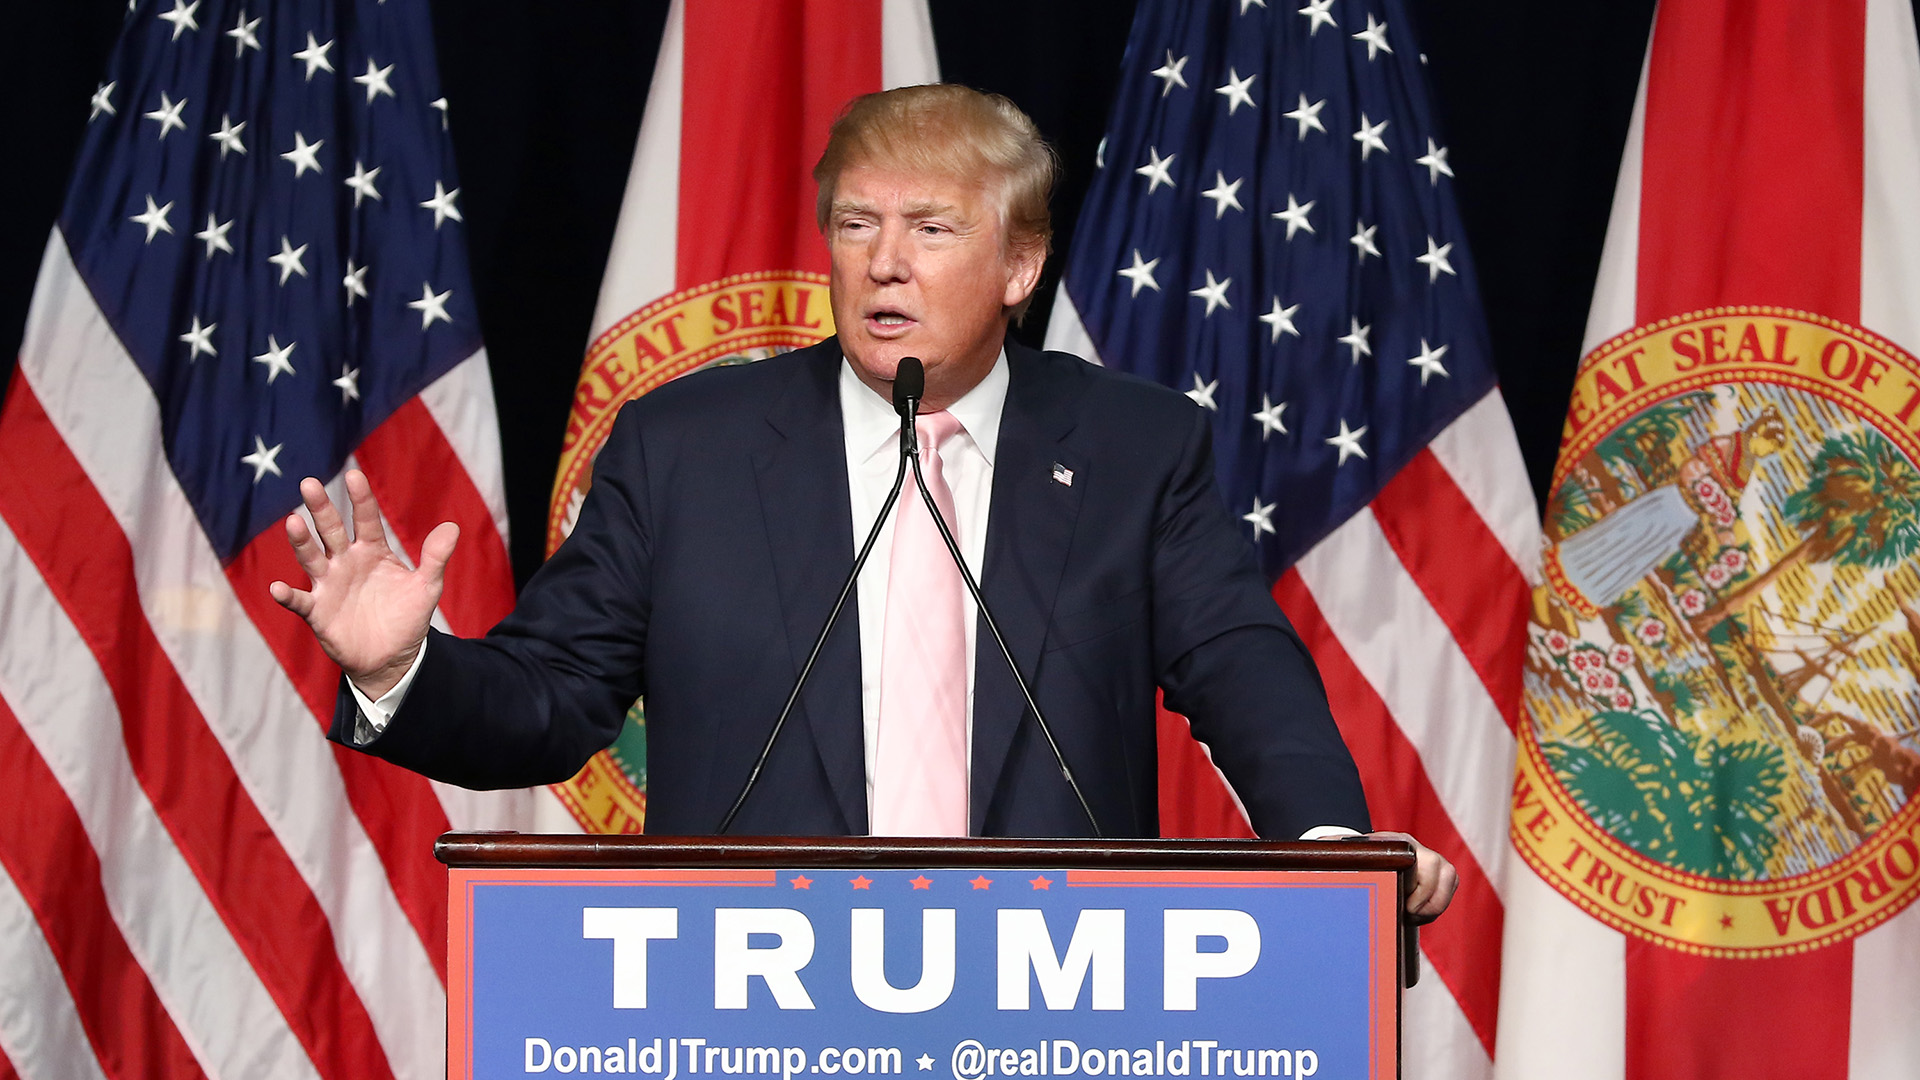 Presidential candidate Donald Trump is seen campaigning at Trump National Doral on October 23, 2015 in Doral, Florida.